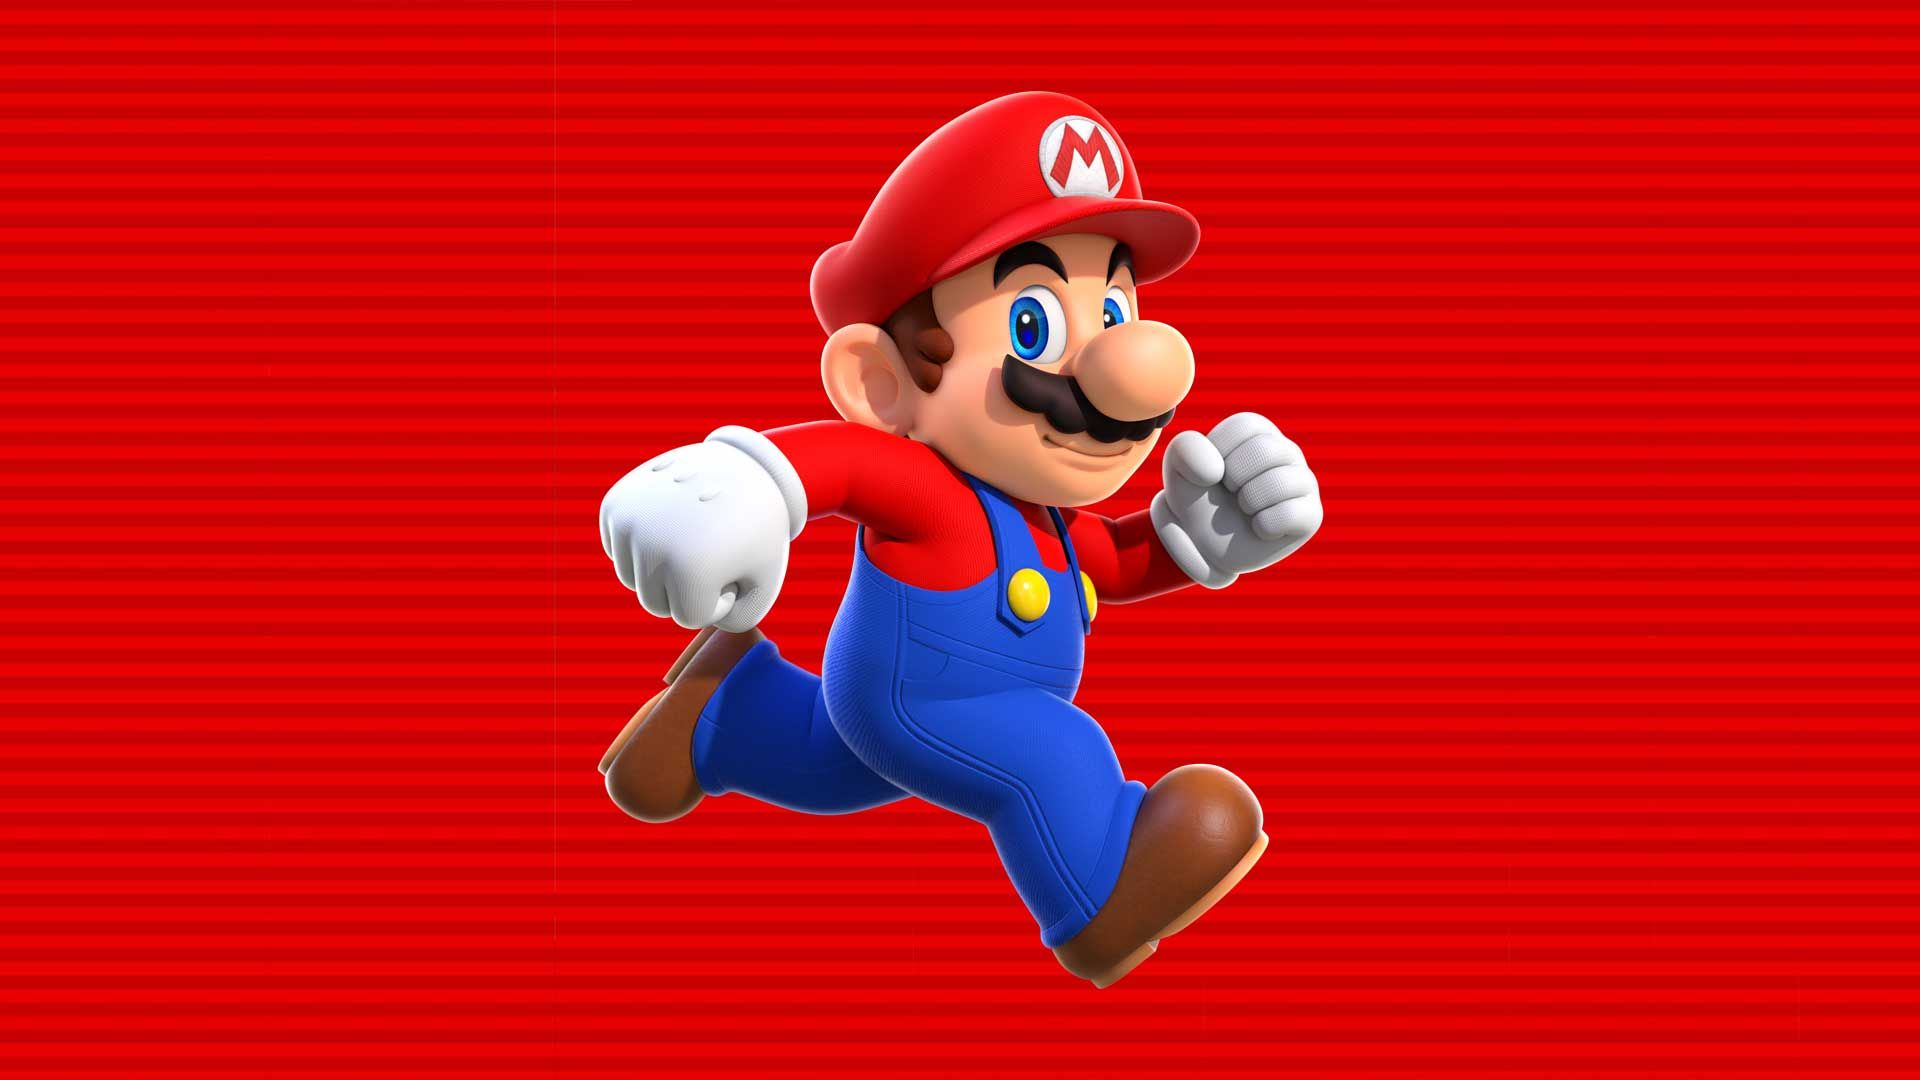 Even if Super Mario Run doesn't interest you, maybe you can distract the in-laws with it while you sneak away.